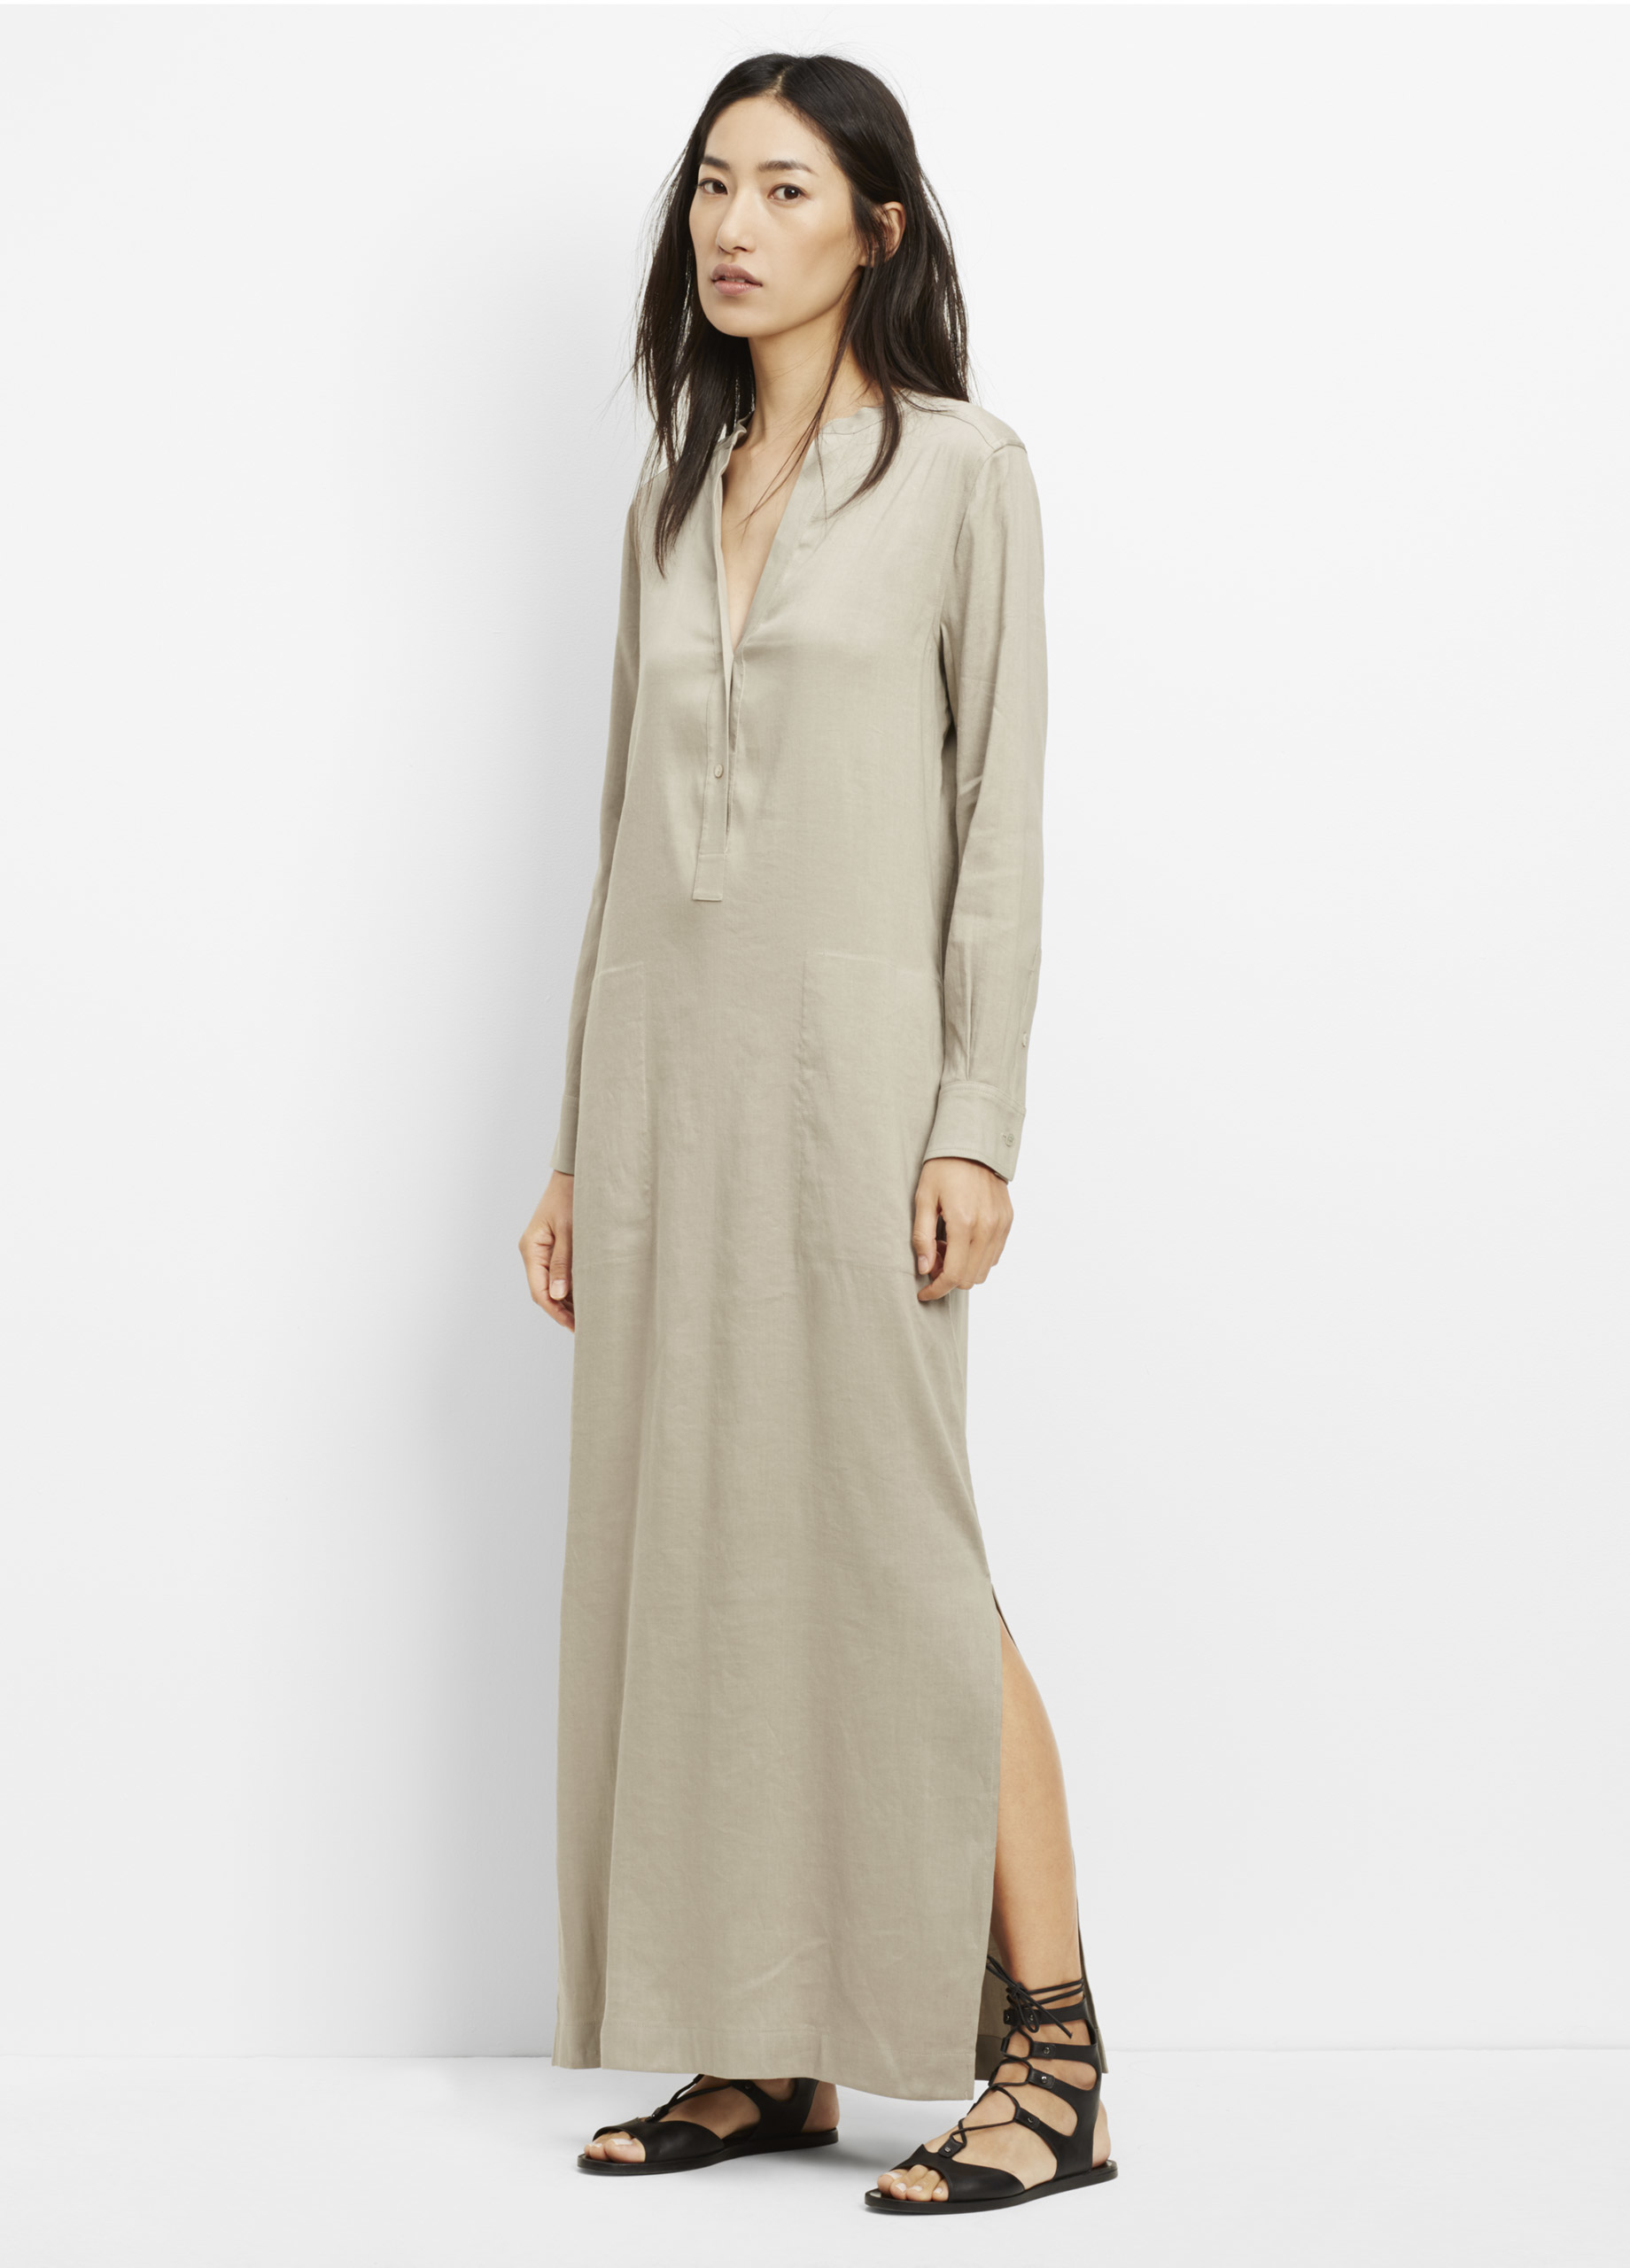 Find wholesale linen maxi dresses online from China linen maxi dresses wholesalers and dropshippers. DHgate helps you get high quality discount linen maxi dresses at bulk prices. exploreblogirvd.gq provides linen maxi dresses items from China top selected Casual Dresses, Dresses, Women's Clothing, Apparel suppliers at wholesale prices with.